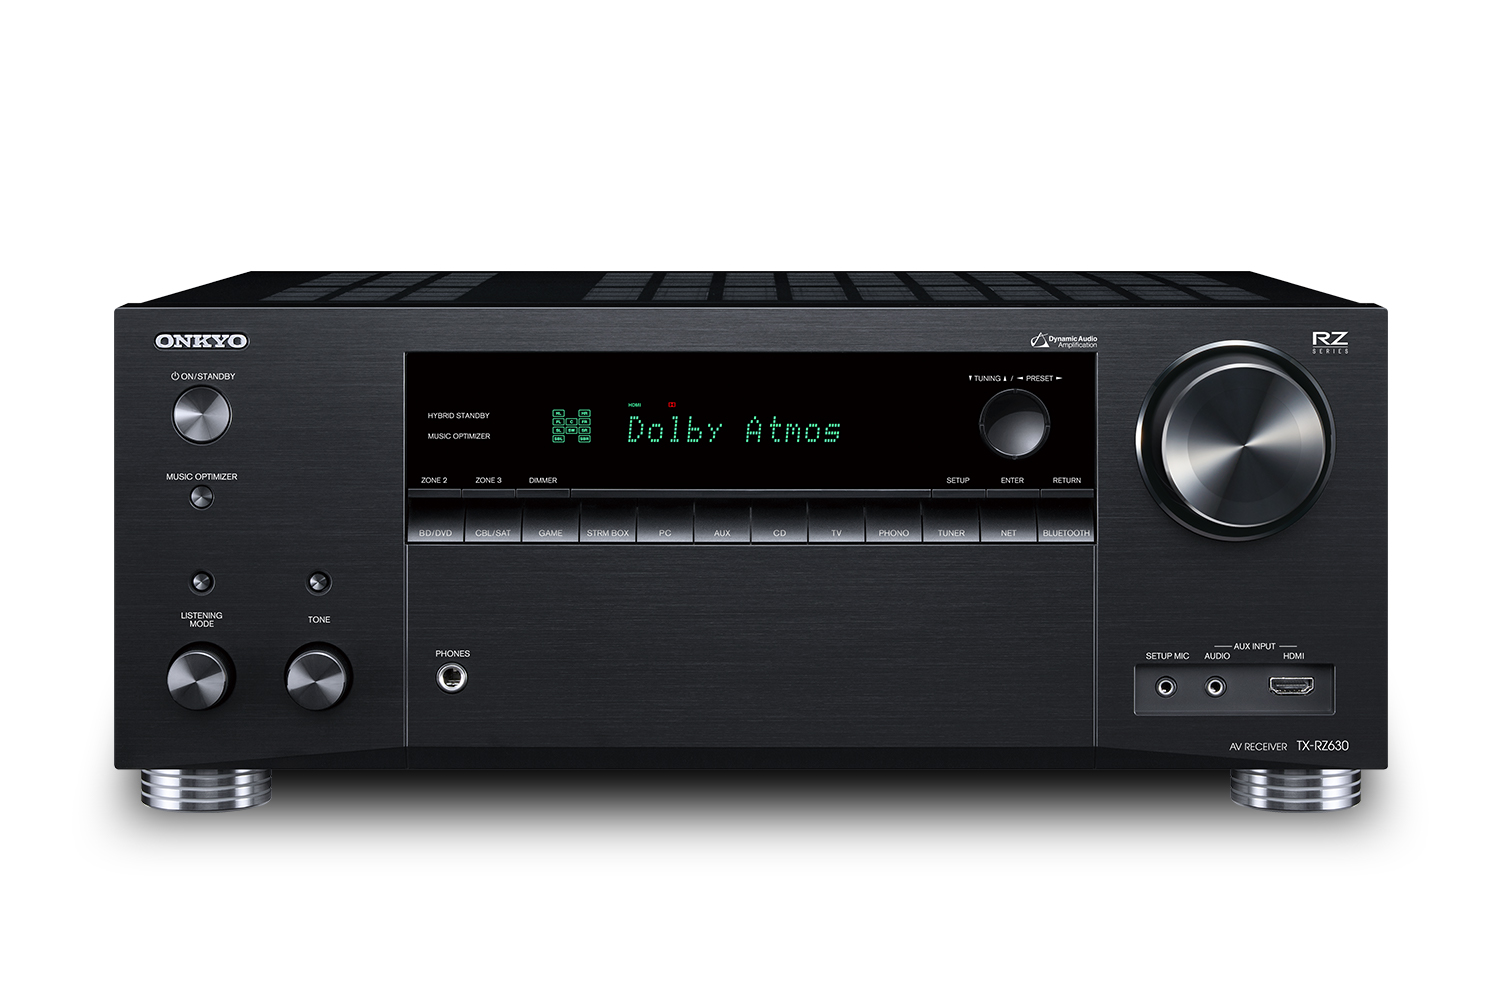 TX-RZ630 ONKYO 9.2-Channel Network A/V Receiver 90 W/Ch (8 Ohms), 215 W/Ch (6 Ohms) Native DTS:X and Dolby Atmos to 5.2.4 Channels Powered Zone 2 and Zone 3 speaker outputs Chromecast built-in, AirPlay, Wi-Fi, and Bluetooth ************************* SPECIAL ORDER ITEM NO RETURNS OR SUBJECT TO RESTOCK FEE *************************